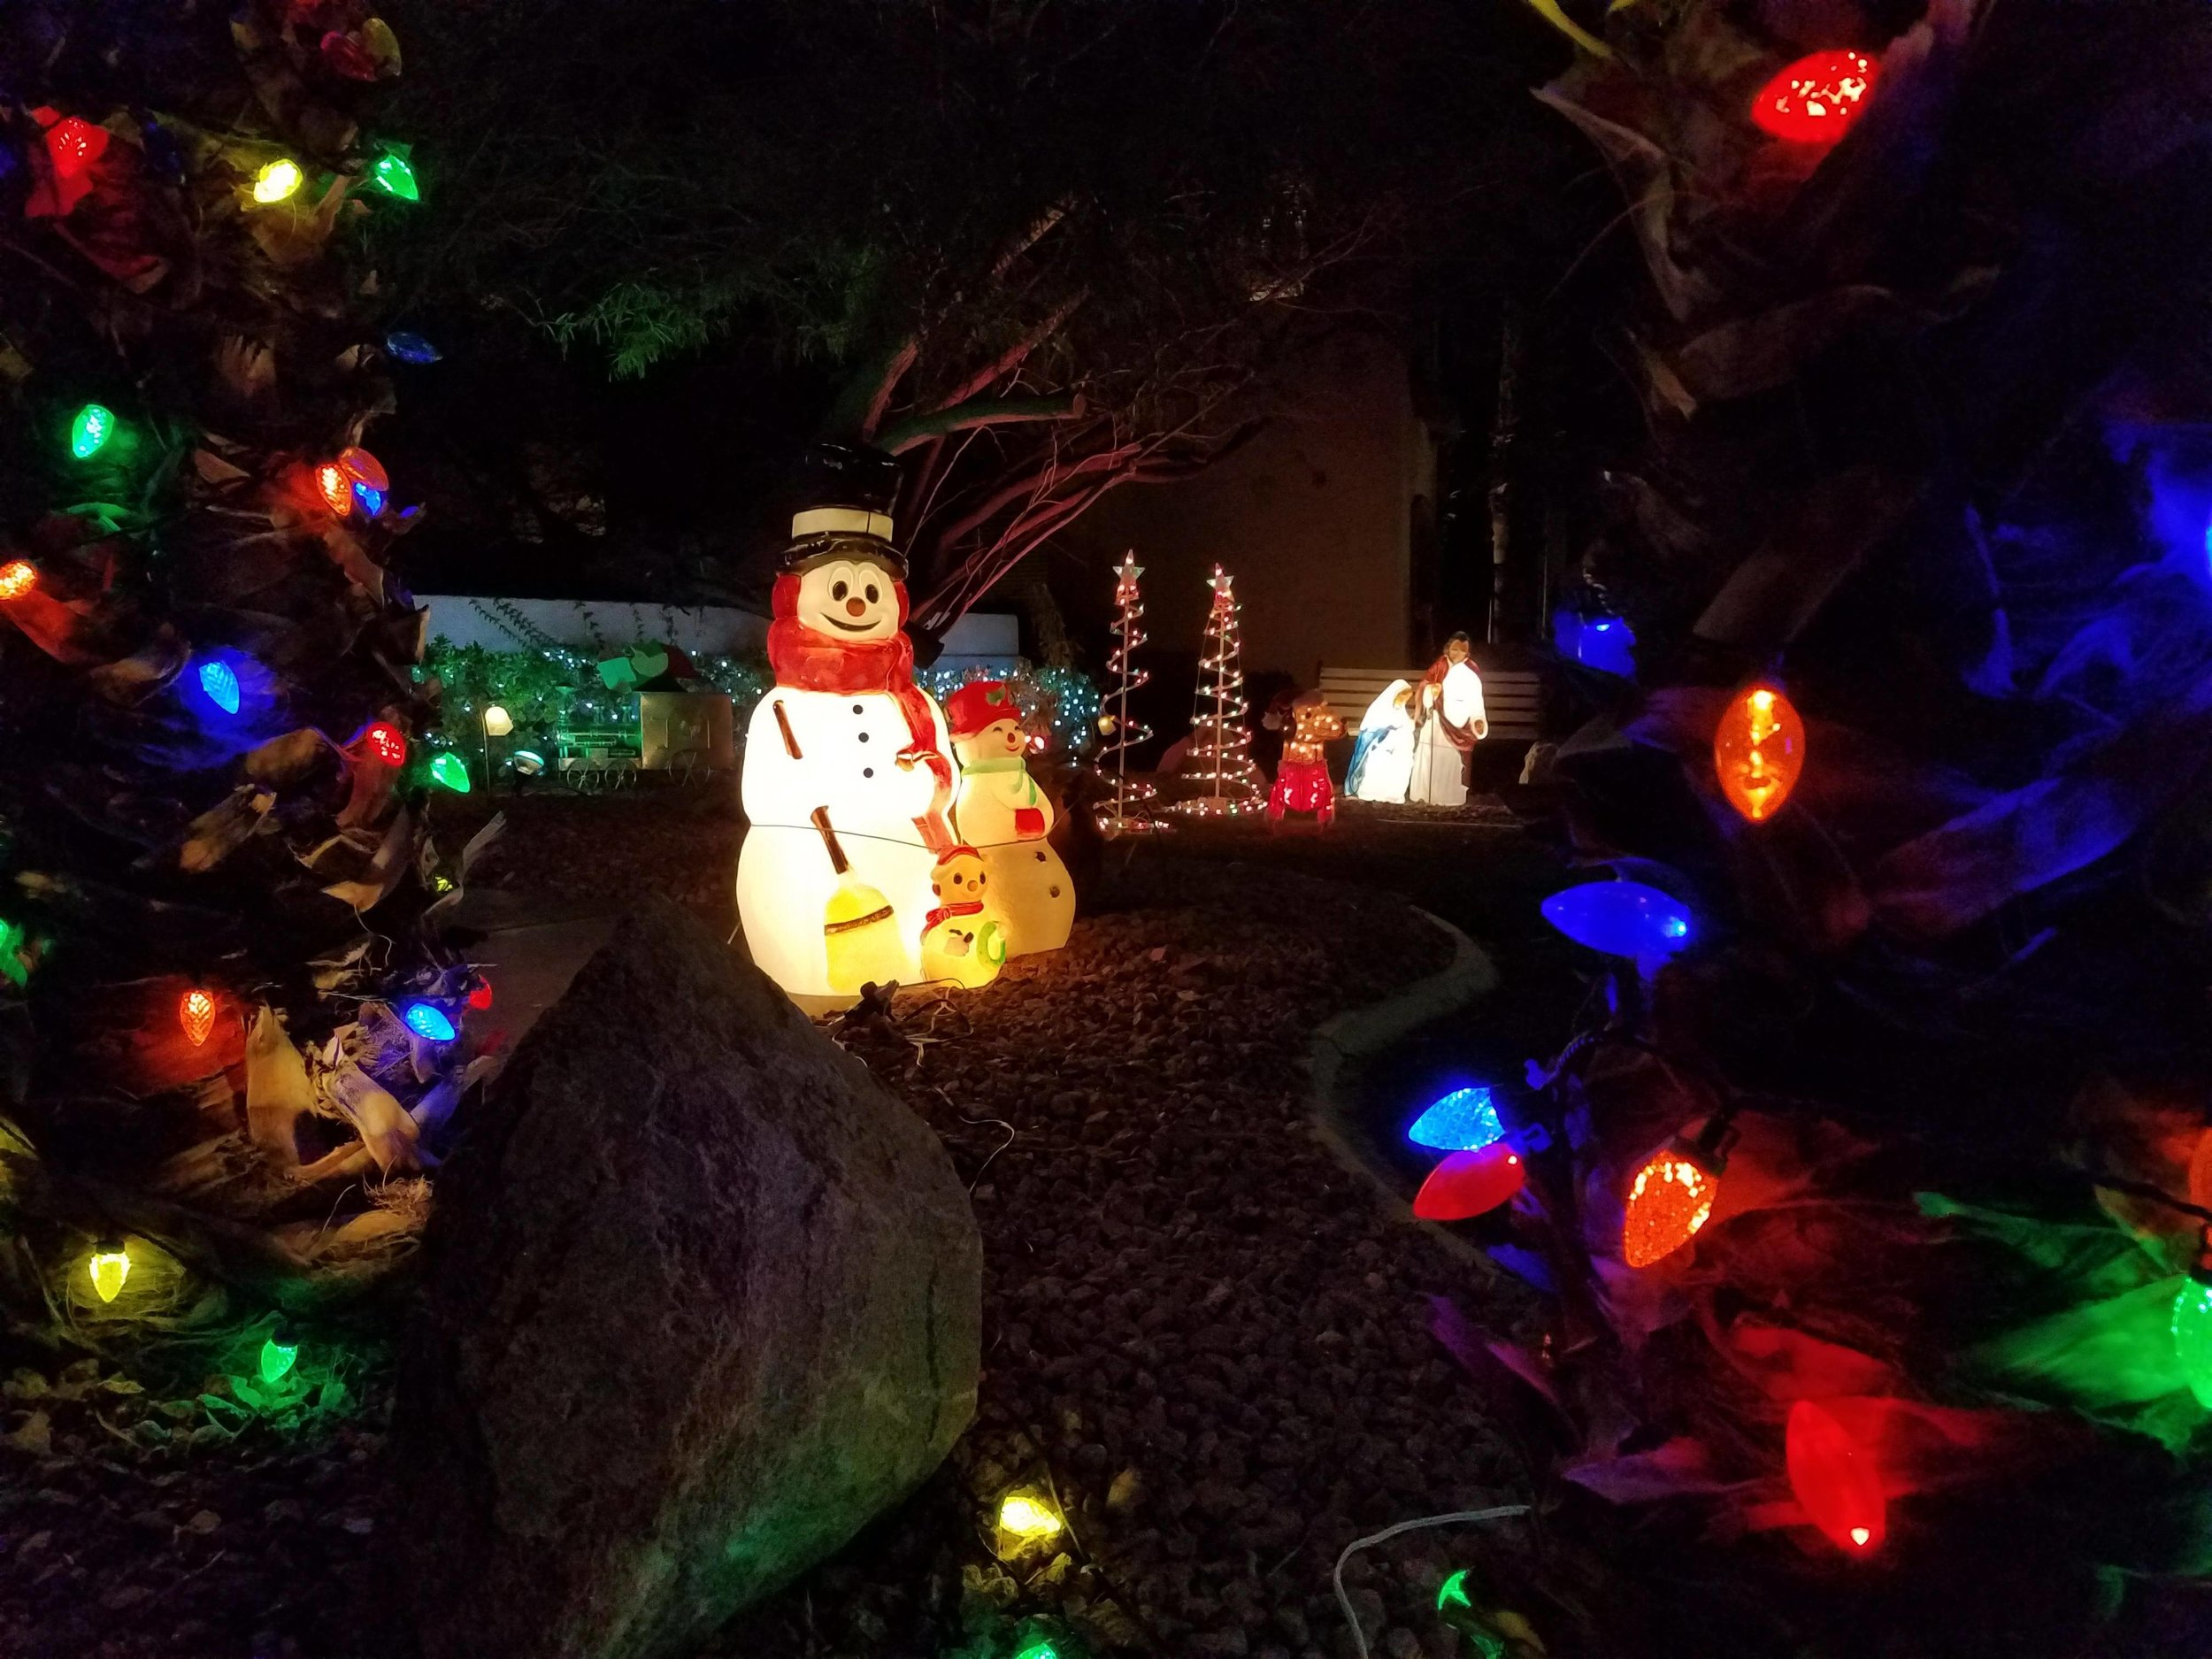 Murray's Christmas decorations on his home.